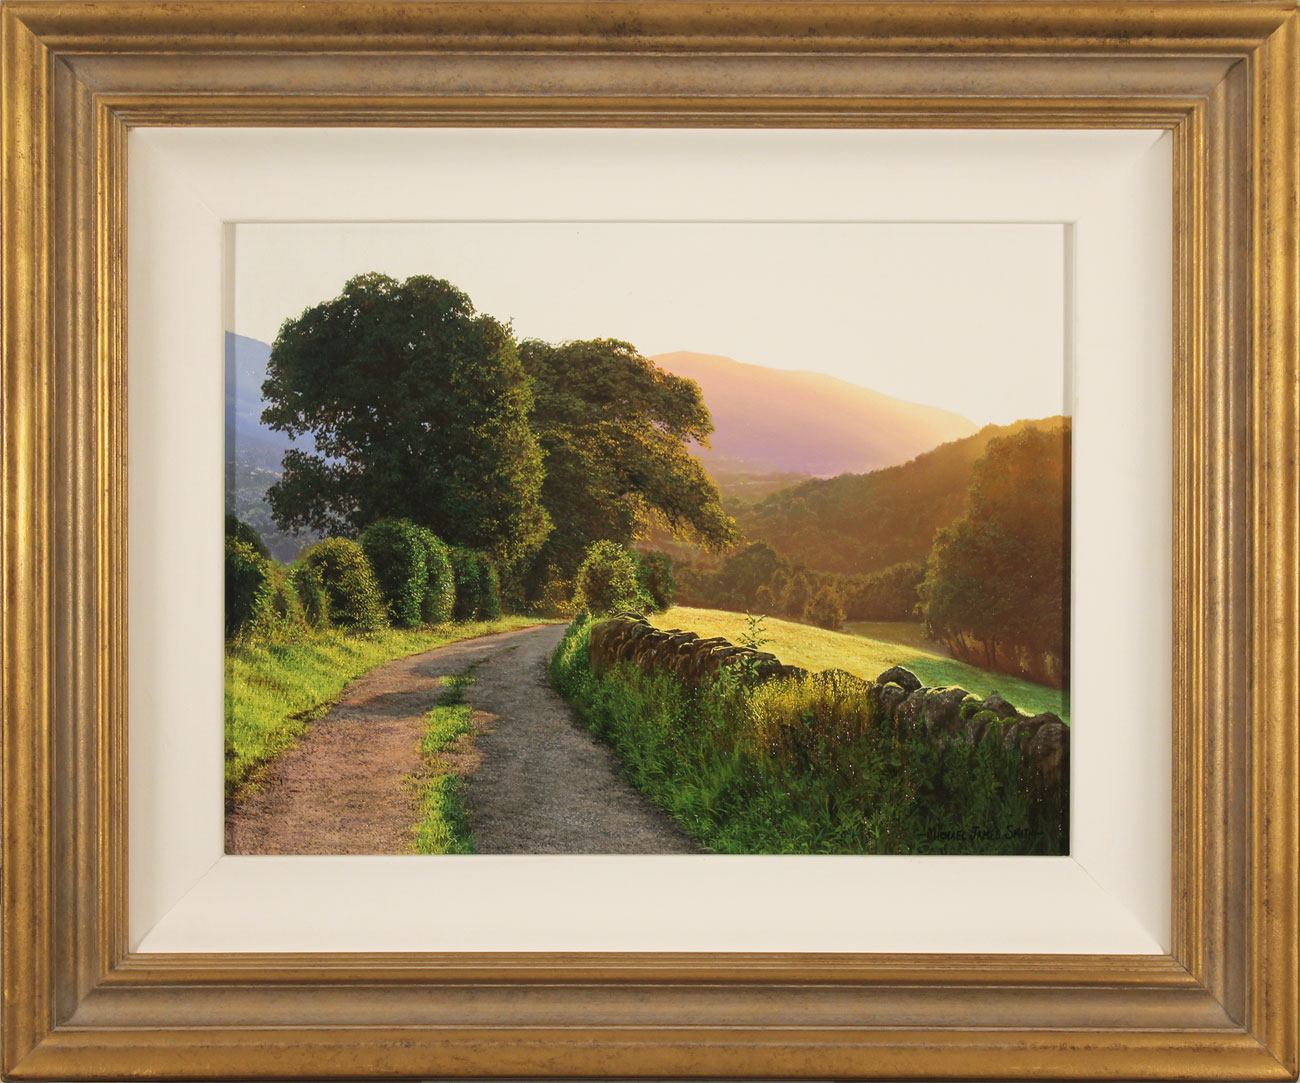 Michael James Smith, Original oil painting on canvas, Keswick Click to enlarge